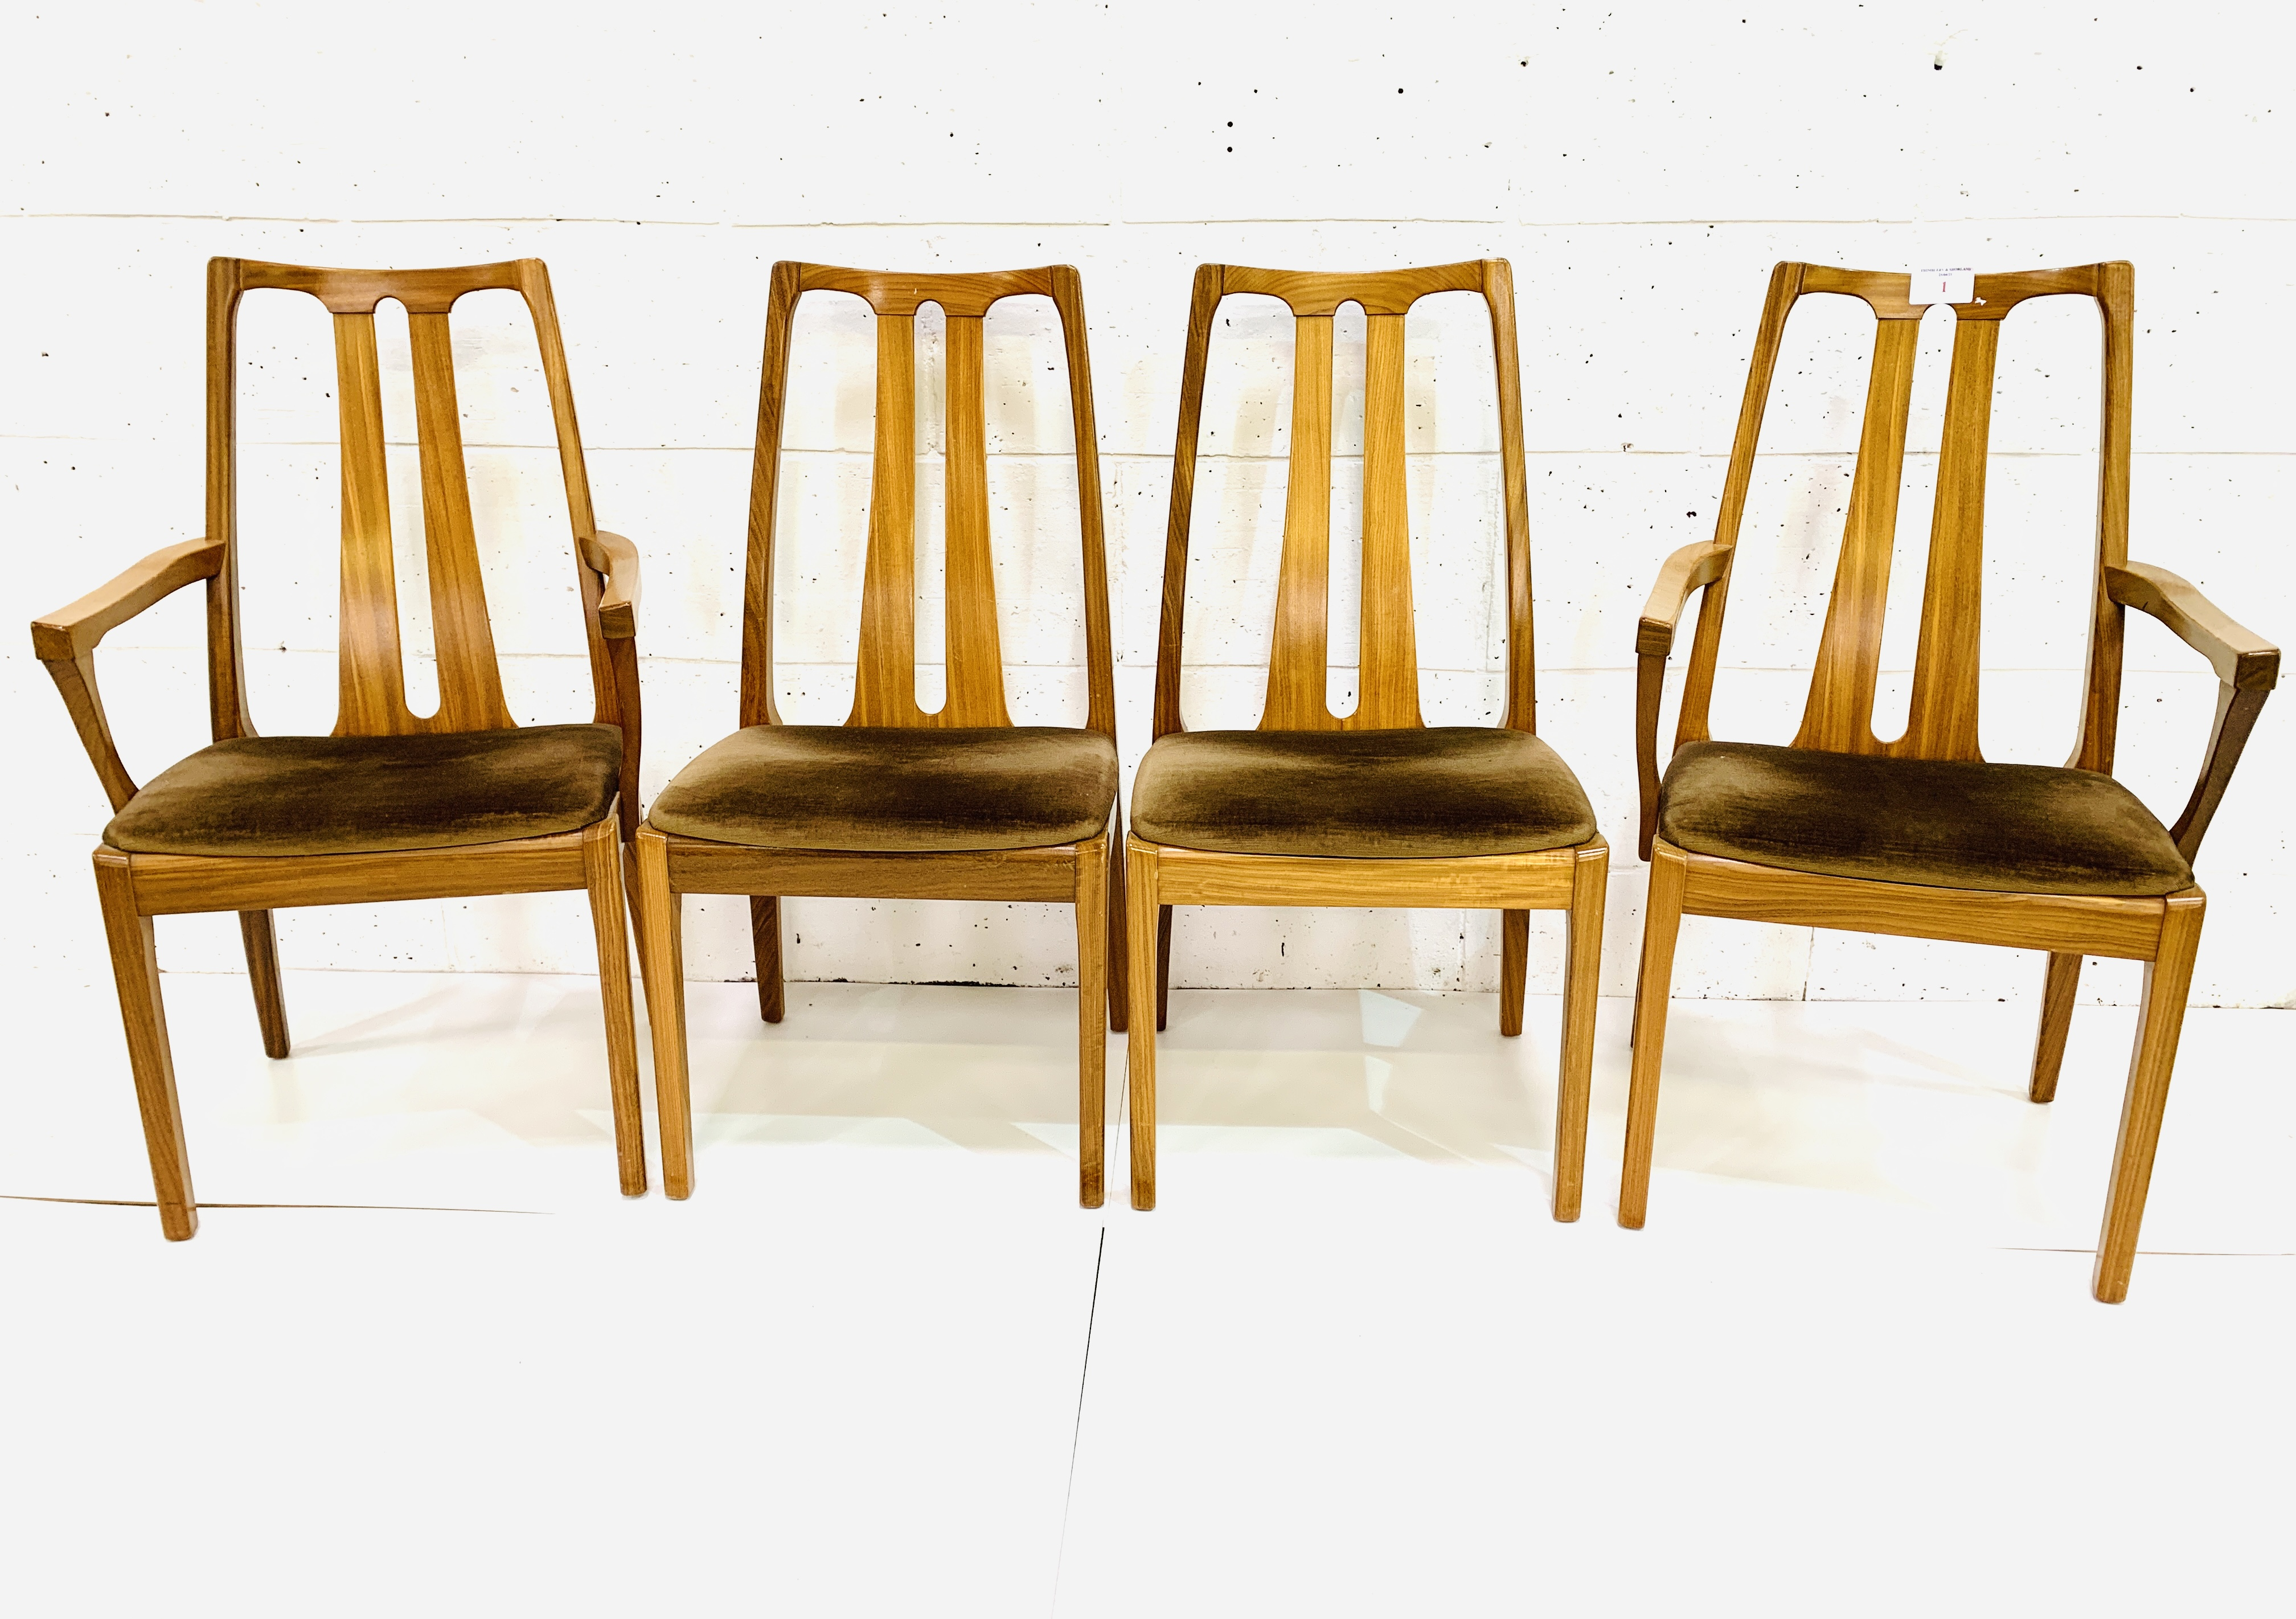 Group of four Nathan Furniture chairs - Image 6 of 6